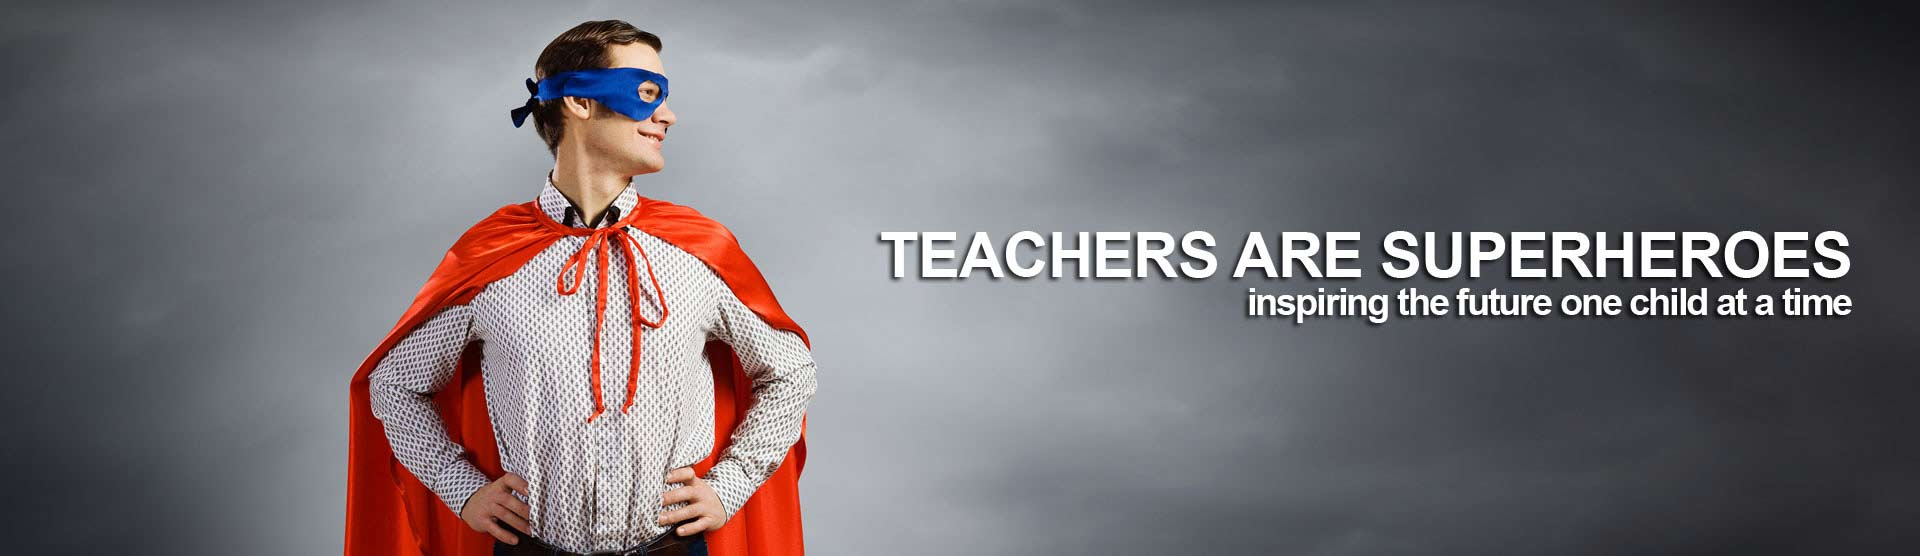 Teachers are superheroes - Teacher.org